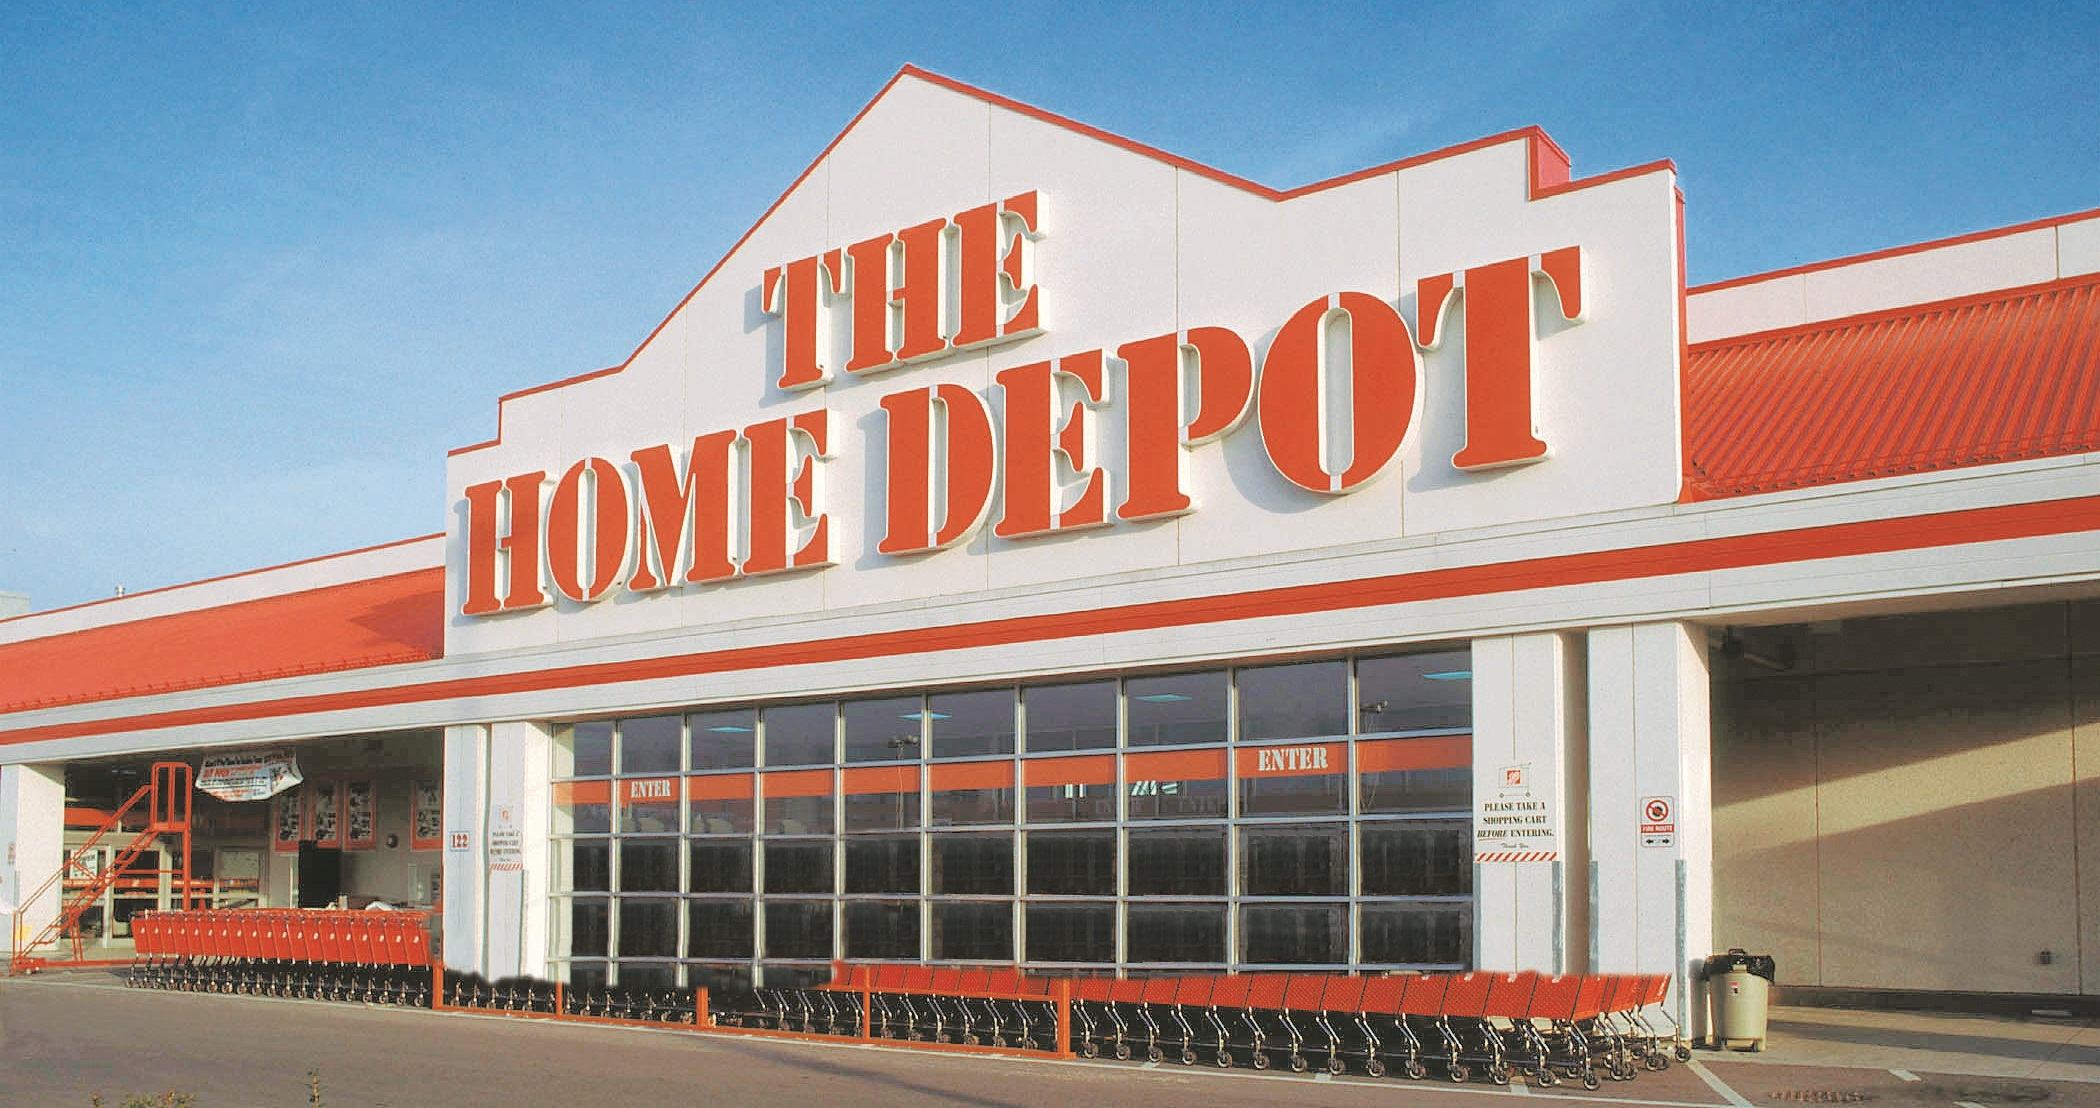 Home Depot Canada - Metro Compactor Service on home depot cash, home depot plumbing aisle, home depot direct deposit, home depot parking, home depot discounts, home depot benefits, home depot mastercard, home depot delivery, home depot shop, home depot services, home depot forms, home depot secure log in, home depot check, home depot projects, home depot locator, home depot address, home depot rebates, home depot product online, home depot home, home depot pricing,